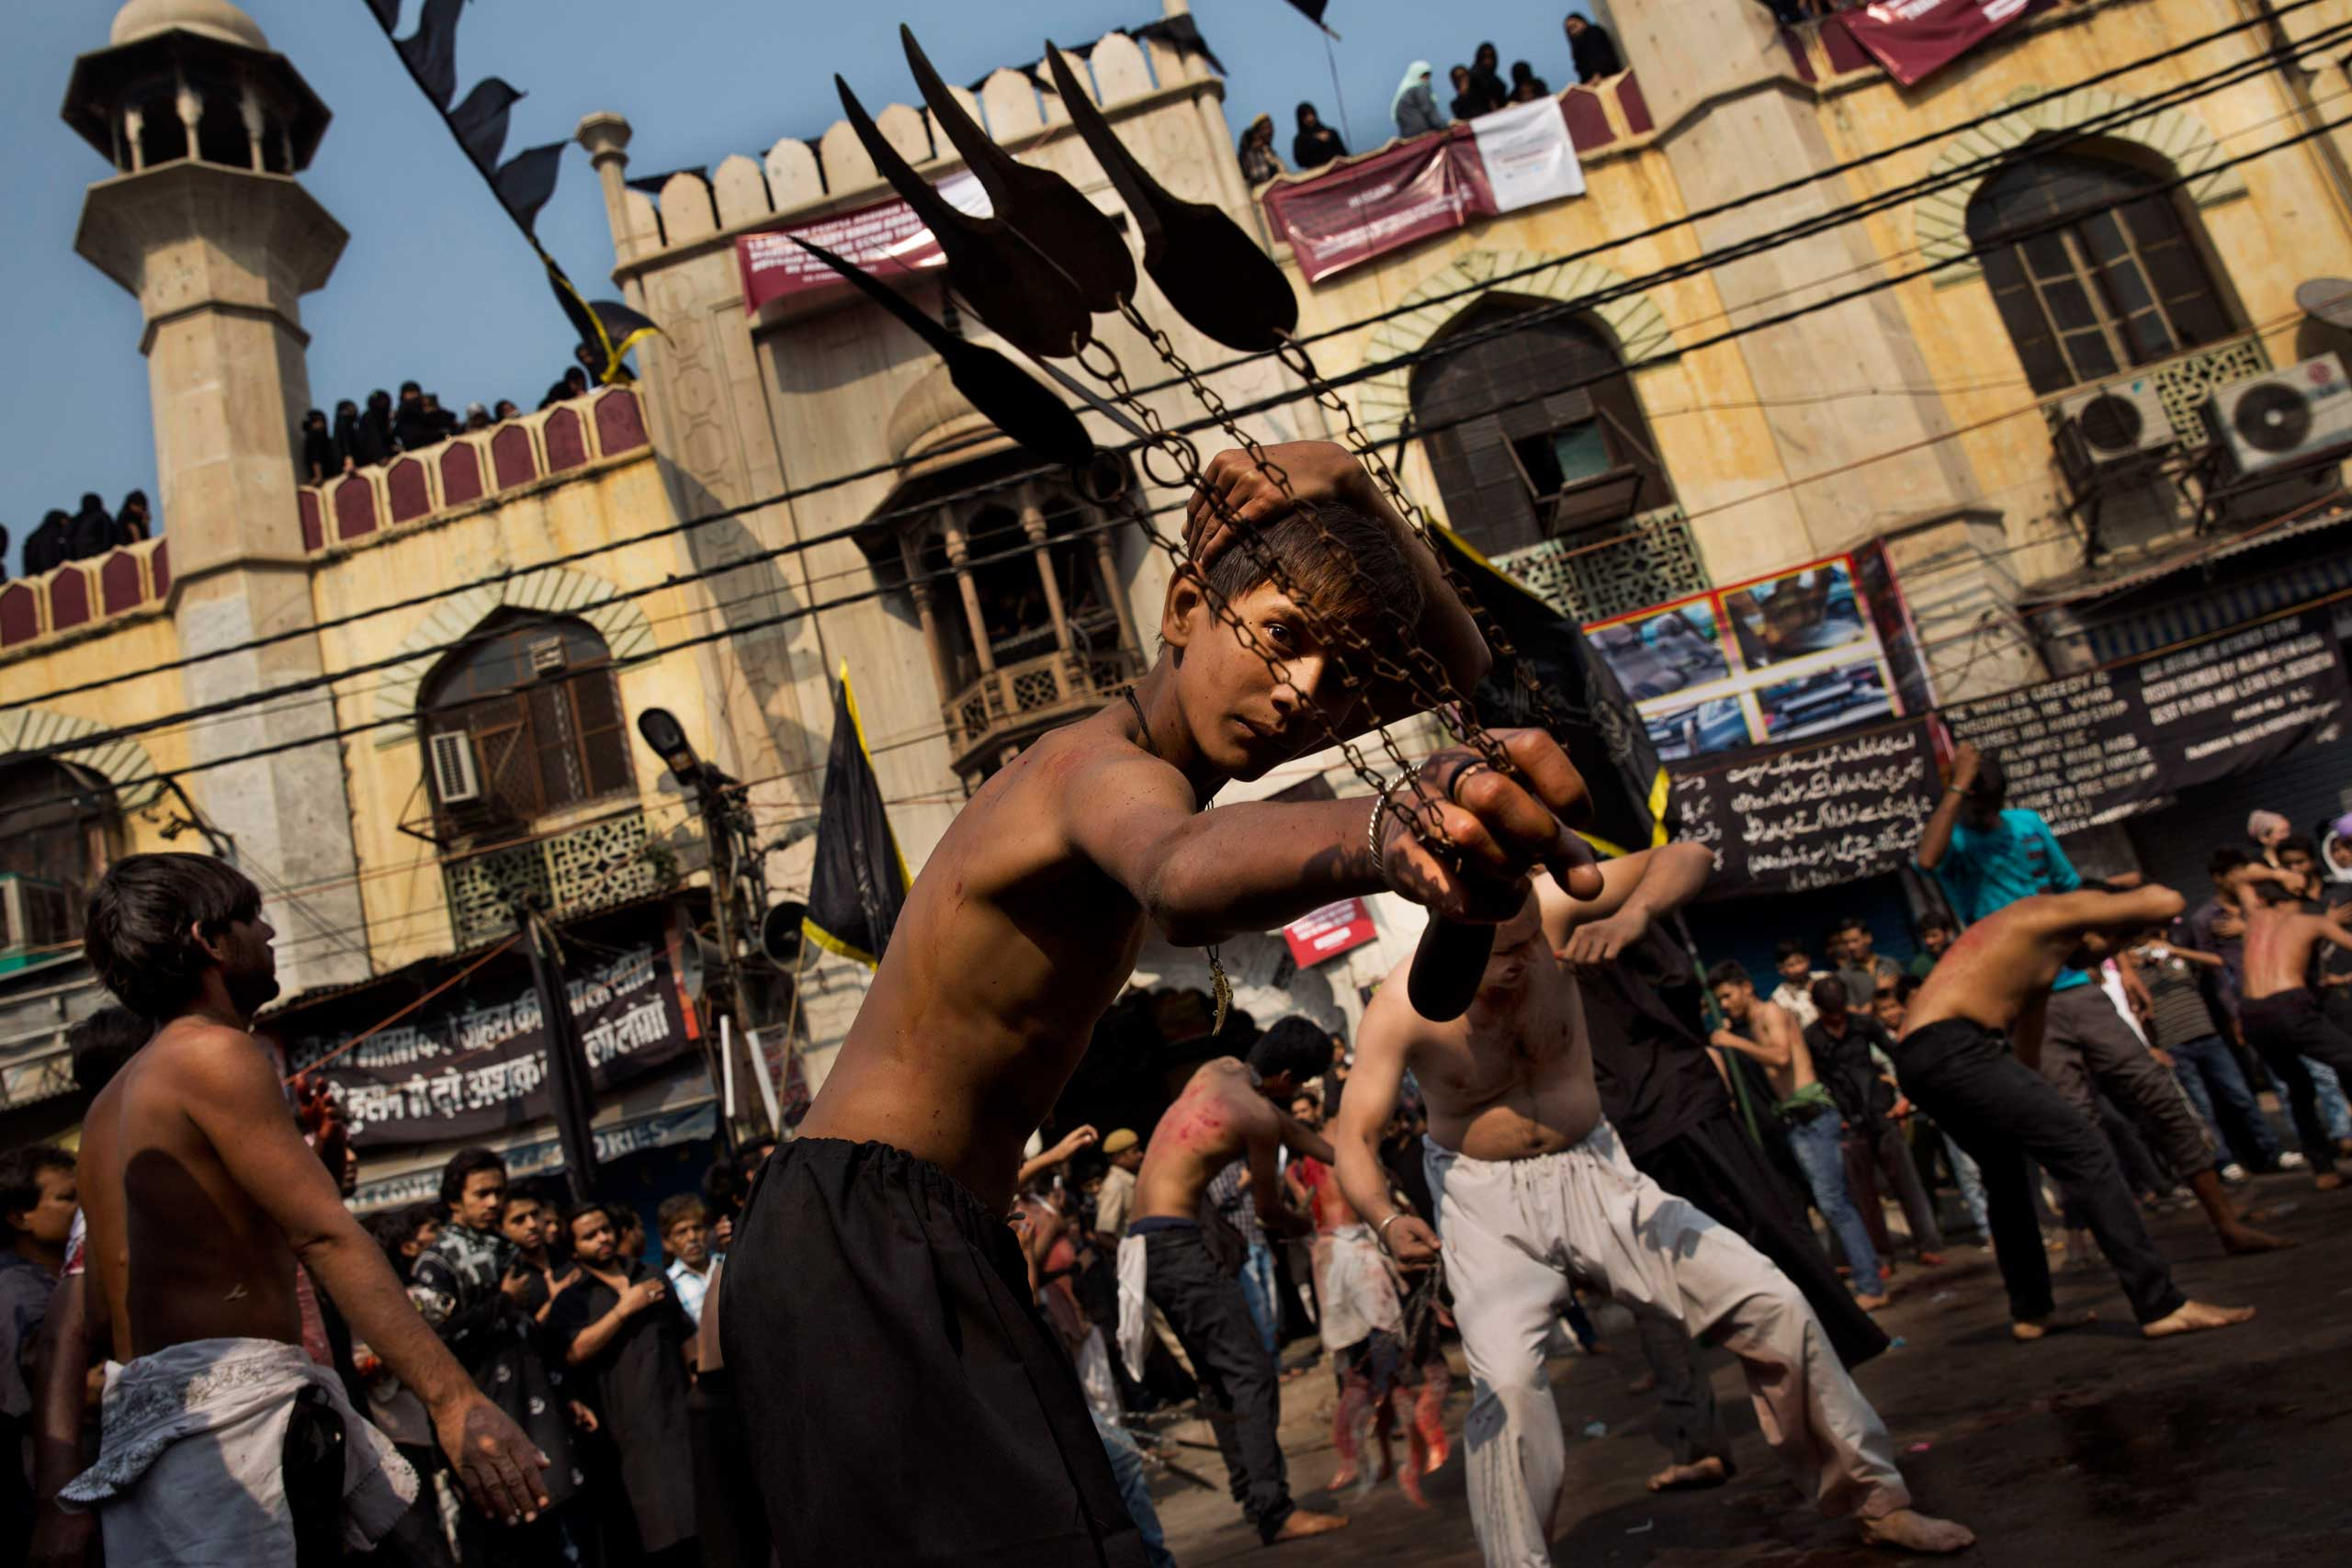 Nov. 4, 2014. A young Indian Shiite Muslim flagellates himself during a procession to mark Ashoura in New Delhi. Shiites mark Ashura, the tenth day of the month of Muharram, to commemorate the Battle of Karbala when Imam Hussein, a grandson of Prophet Muhammad, was killed.